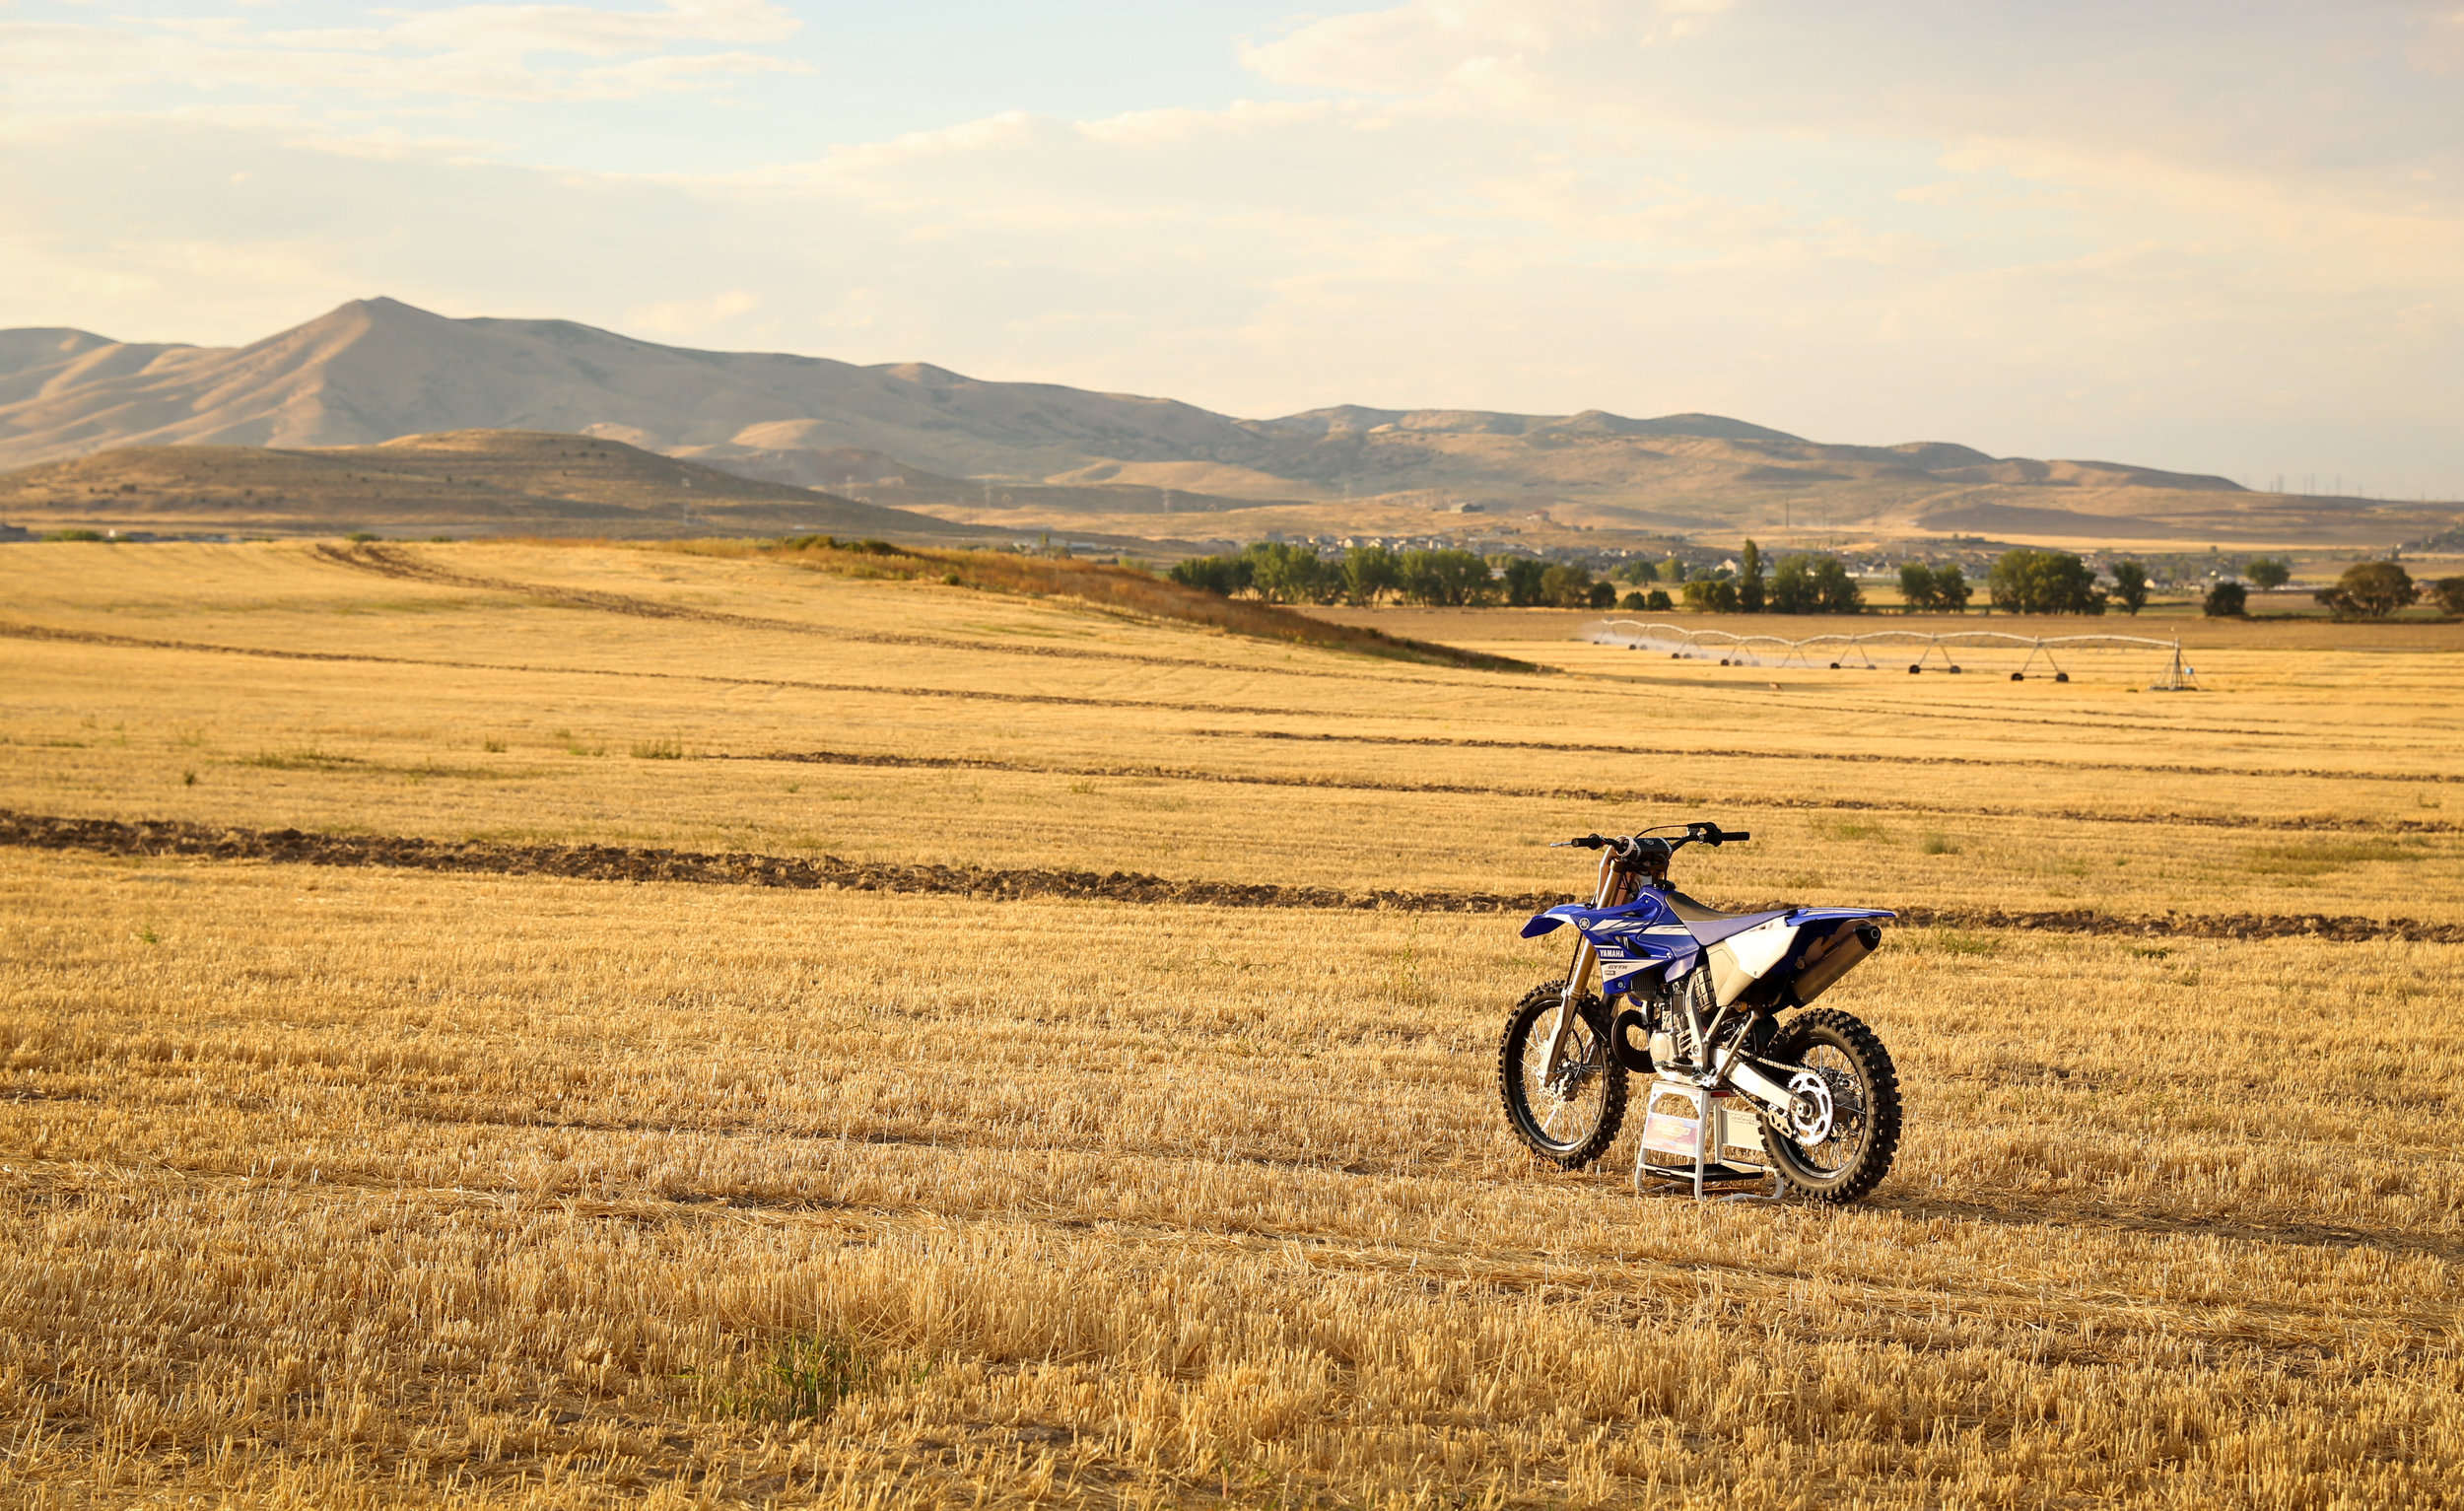 YZ250 for Site (7 of 7).jpg